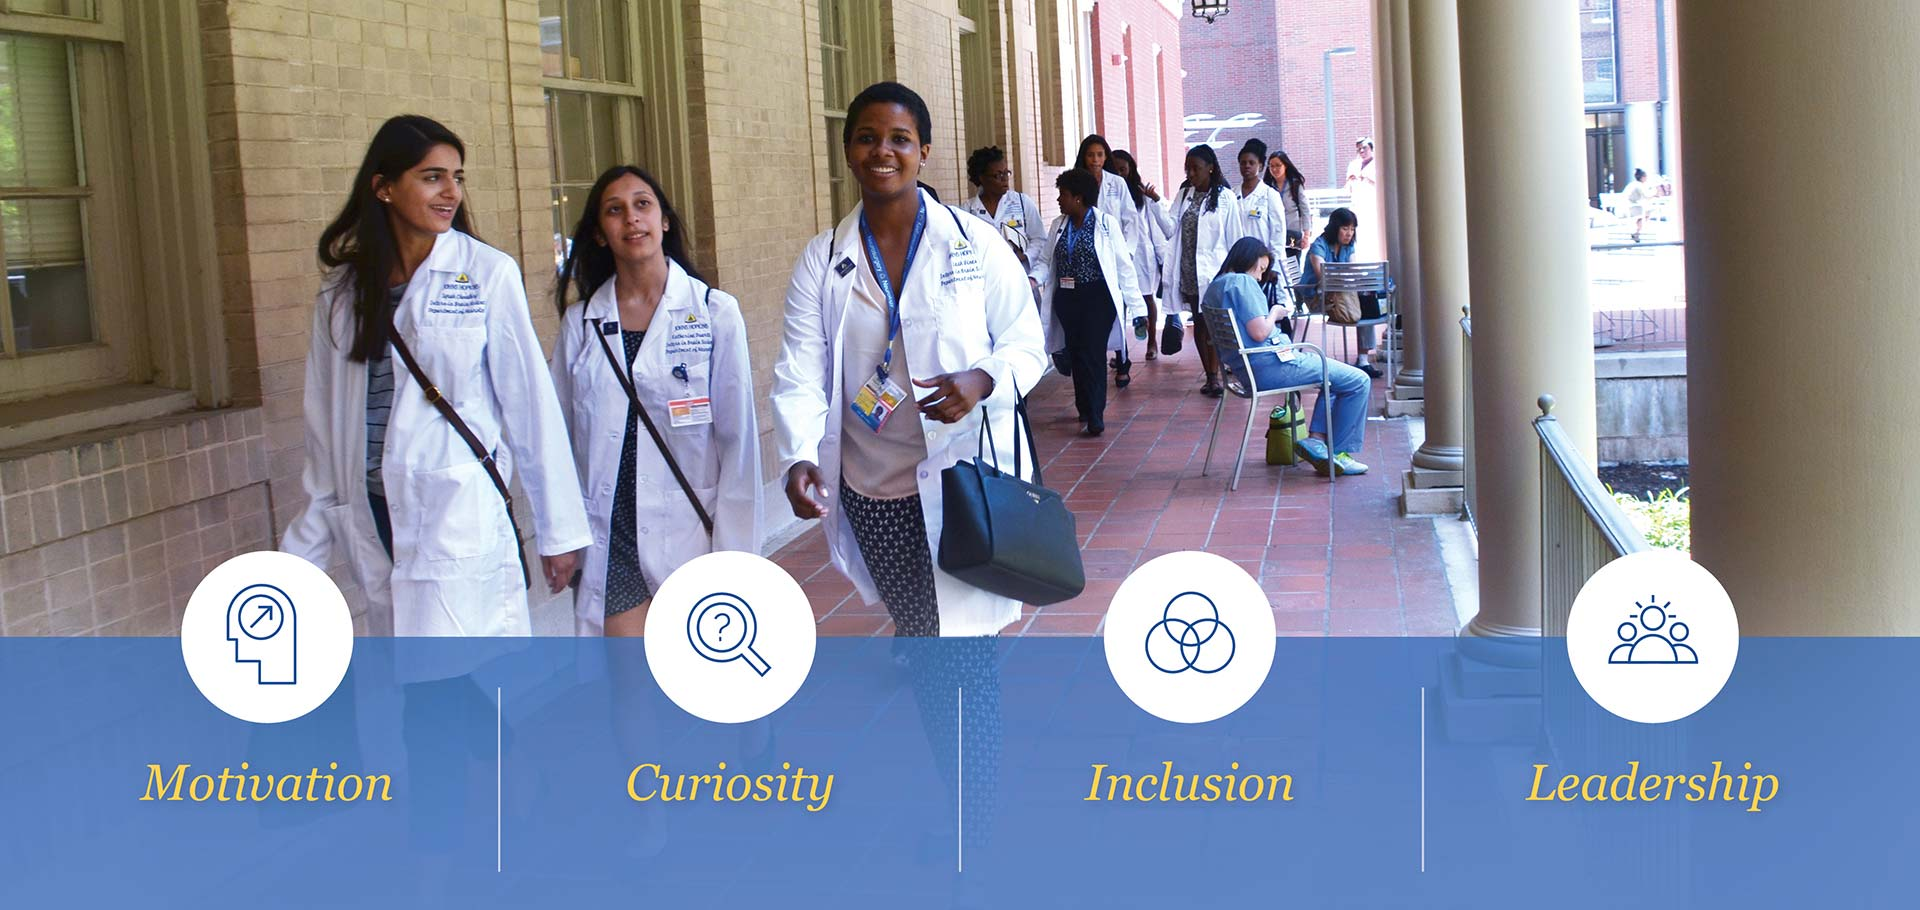 students in white lab coats walking through courtyard